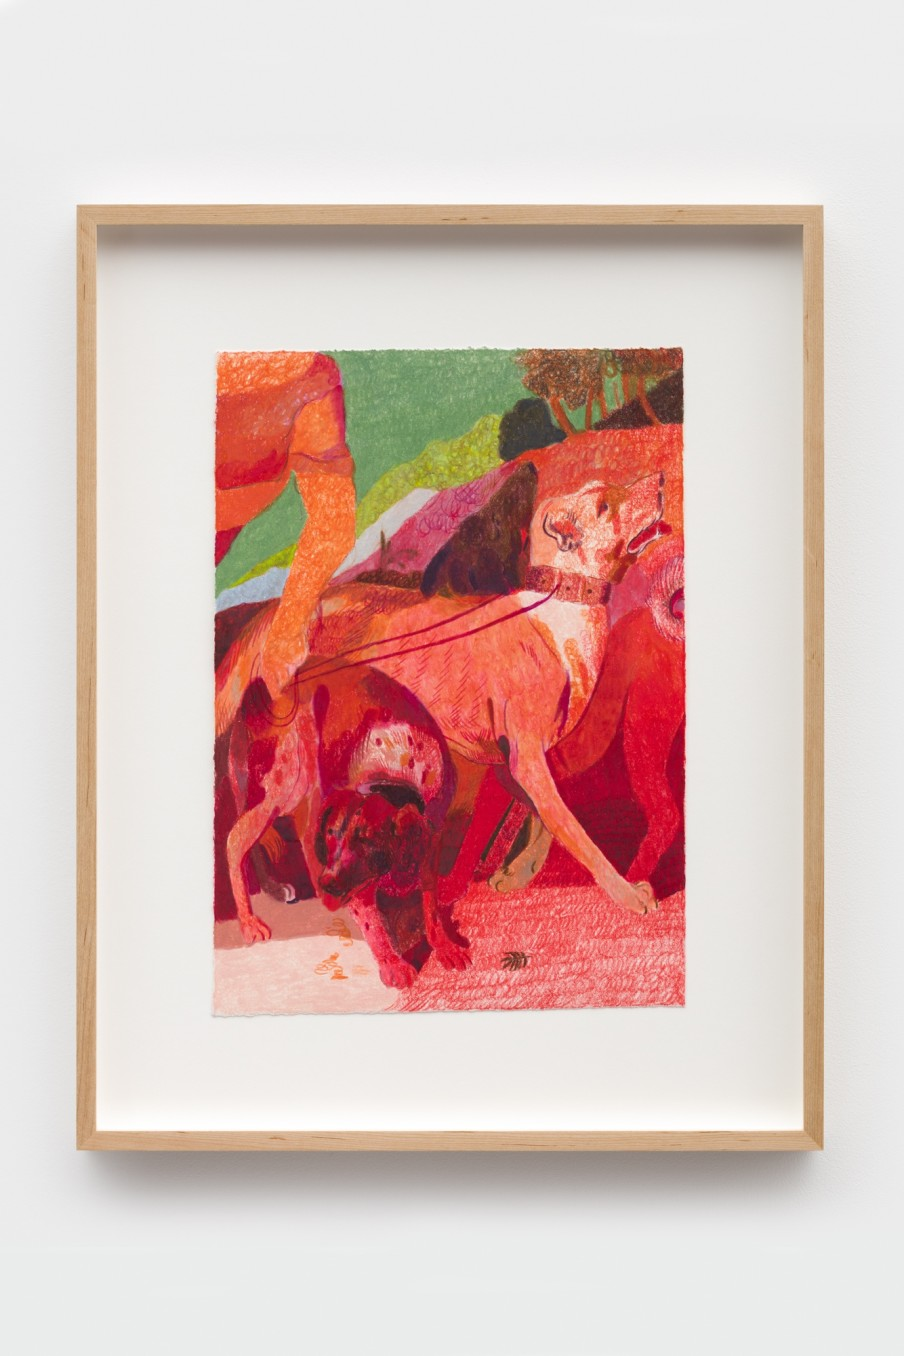 Anthony Cudahy fr Venus and Adonis, 2021 Colored pencil on paper Image: 35.6 x 25.4 cm 14 x 10 in...